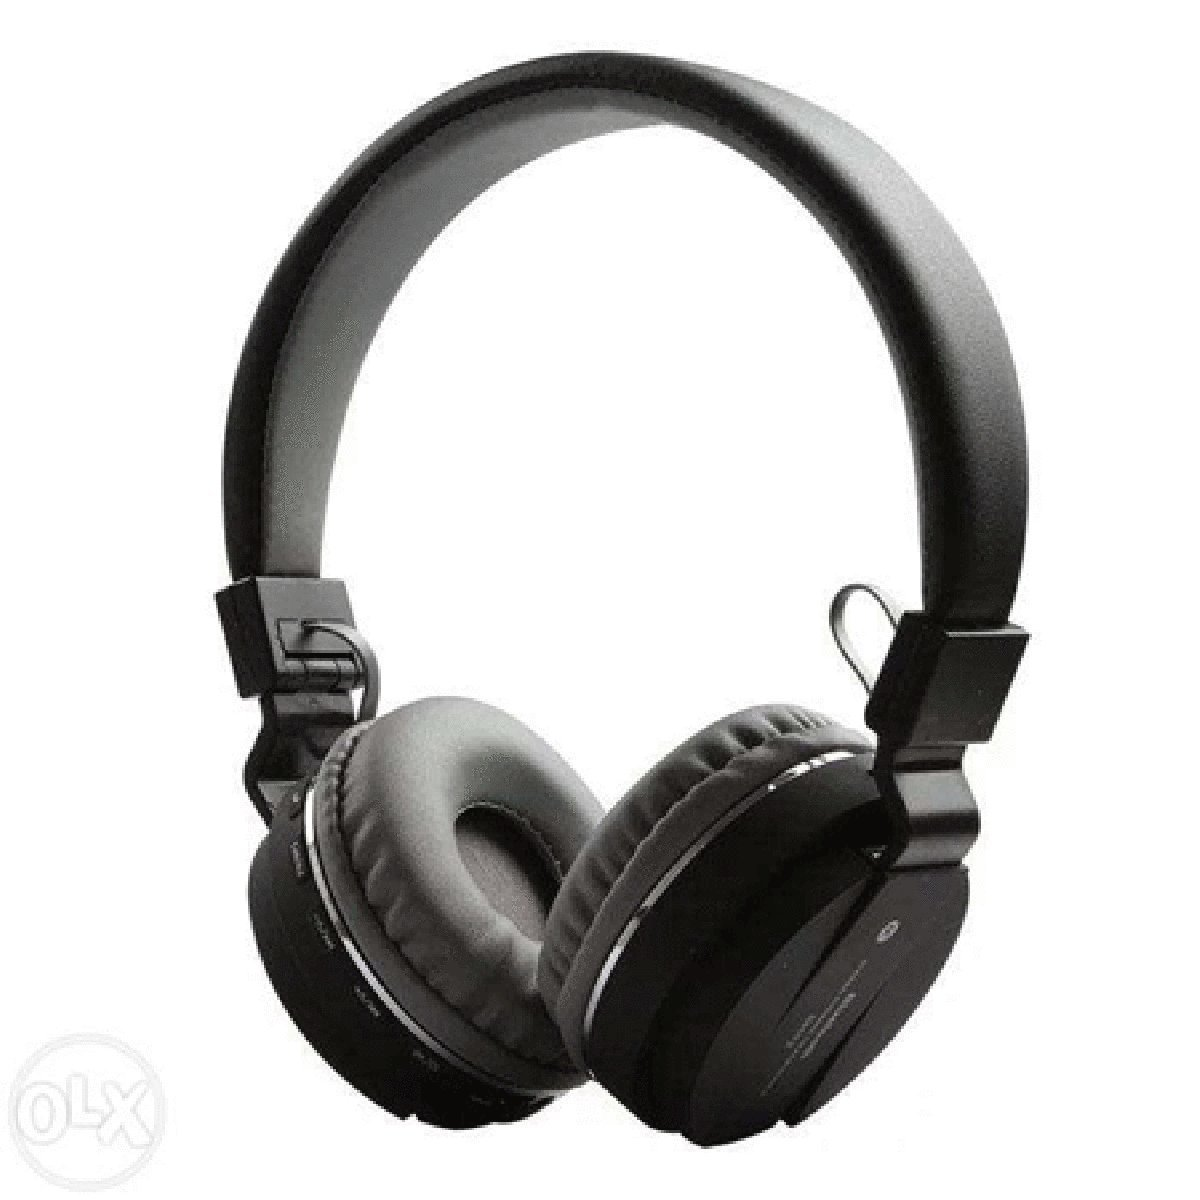 Edios Bluetooth Wireless Headphone with Tf card support function